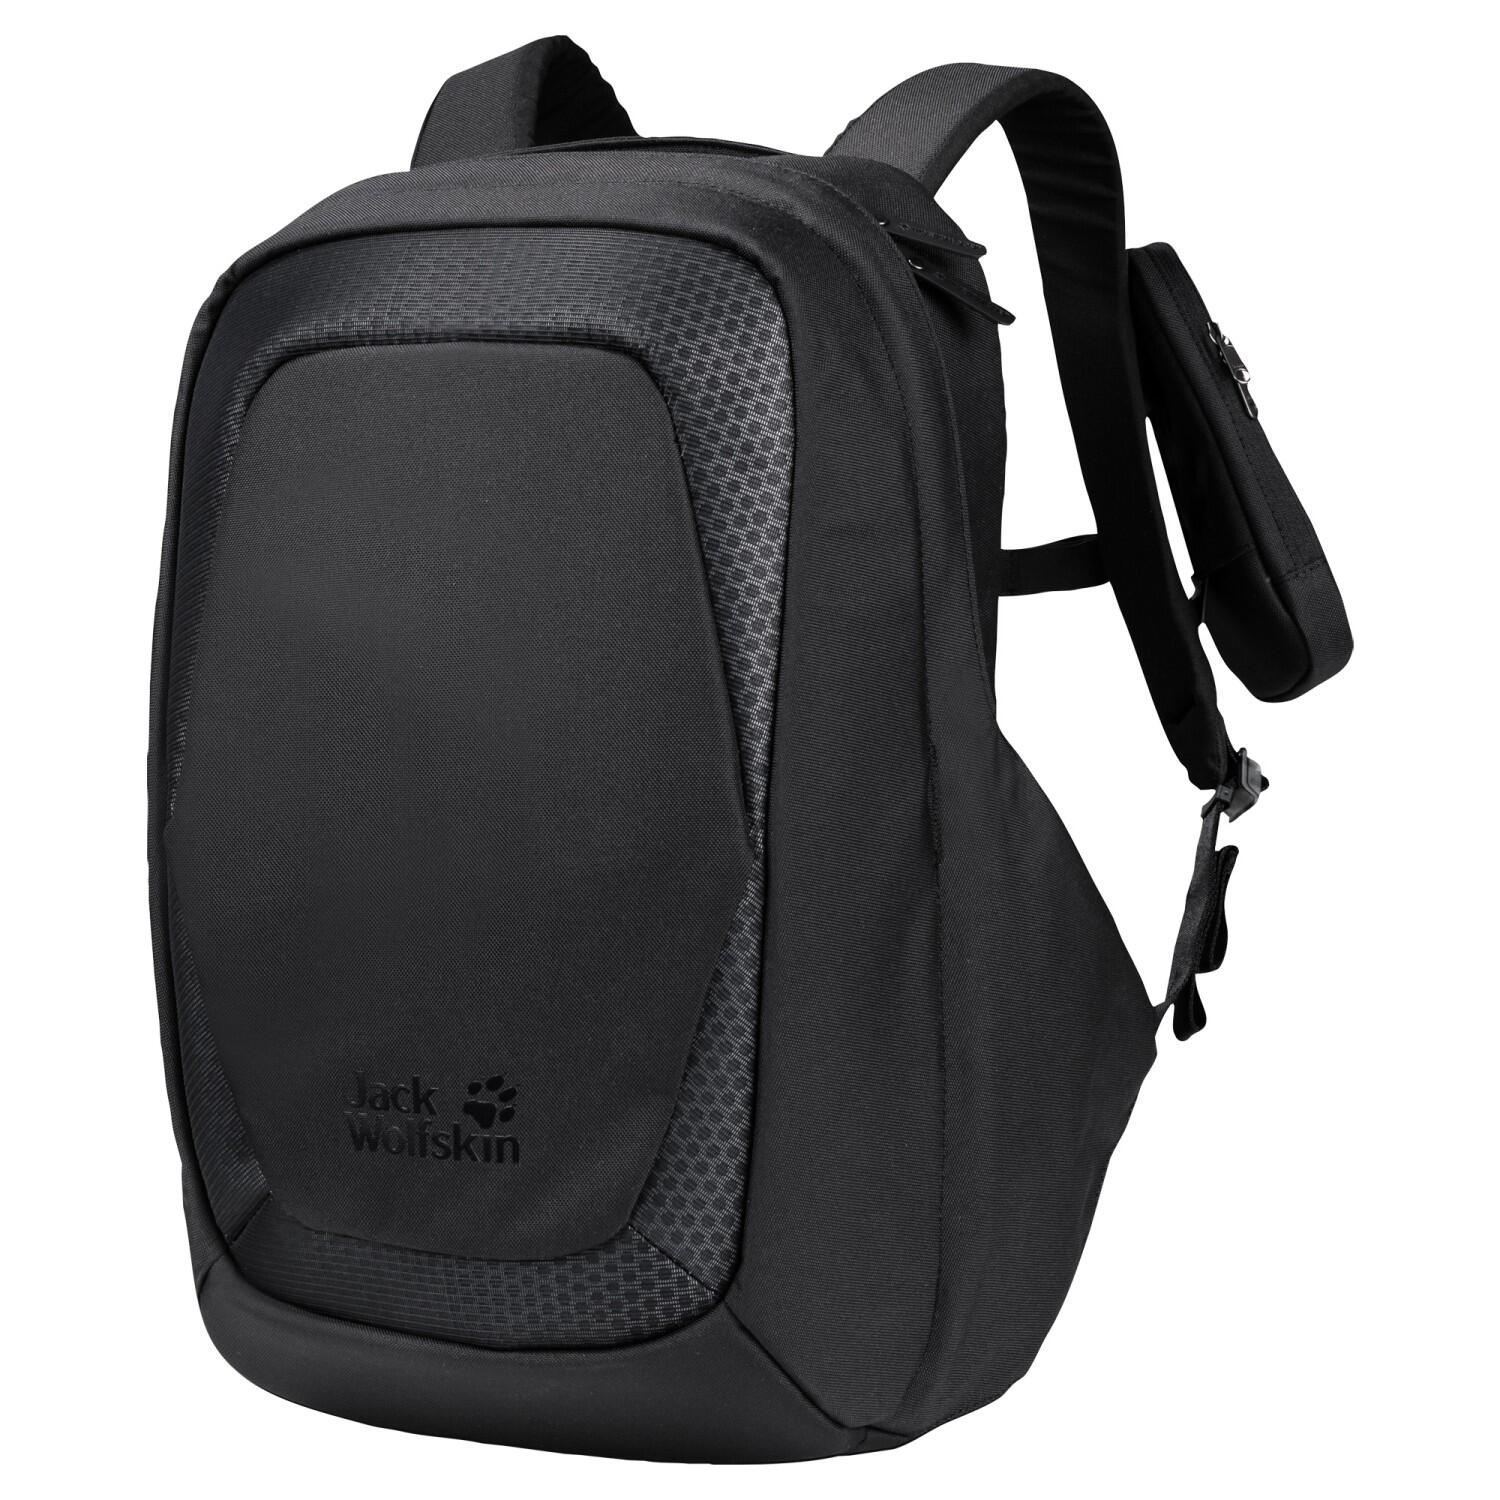 jack-wolfskin-power-on-26-rucksack-mit-powerbank-port-farbe-6000-black-